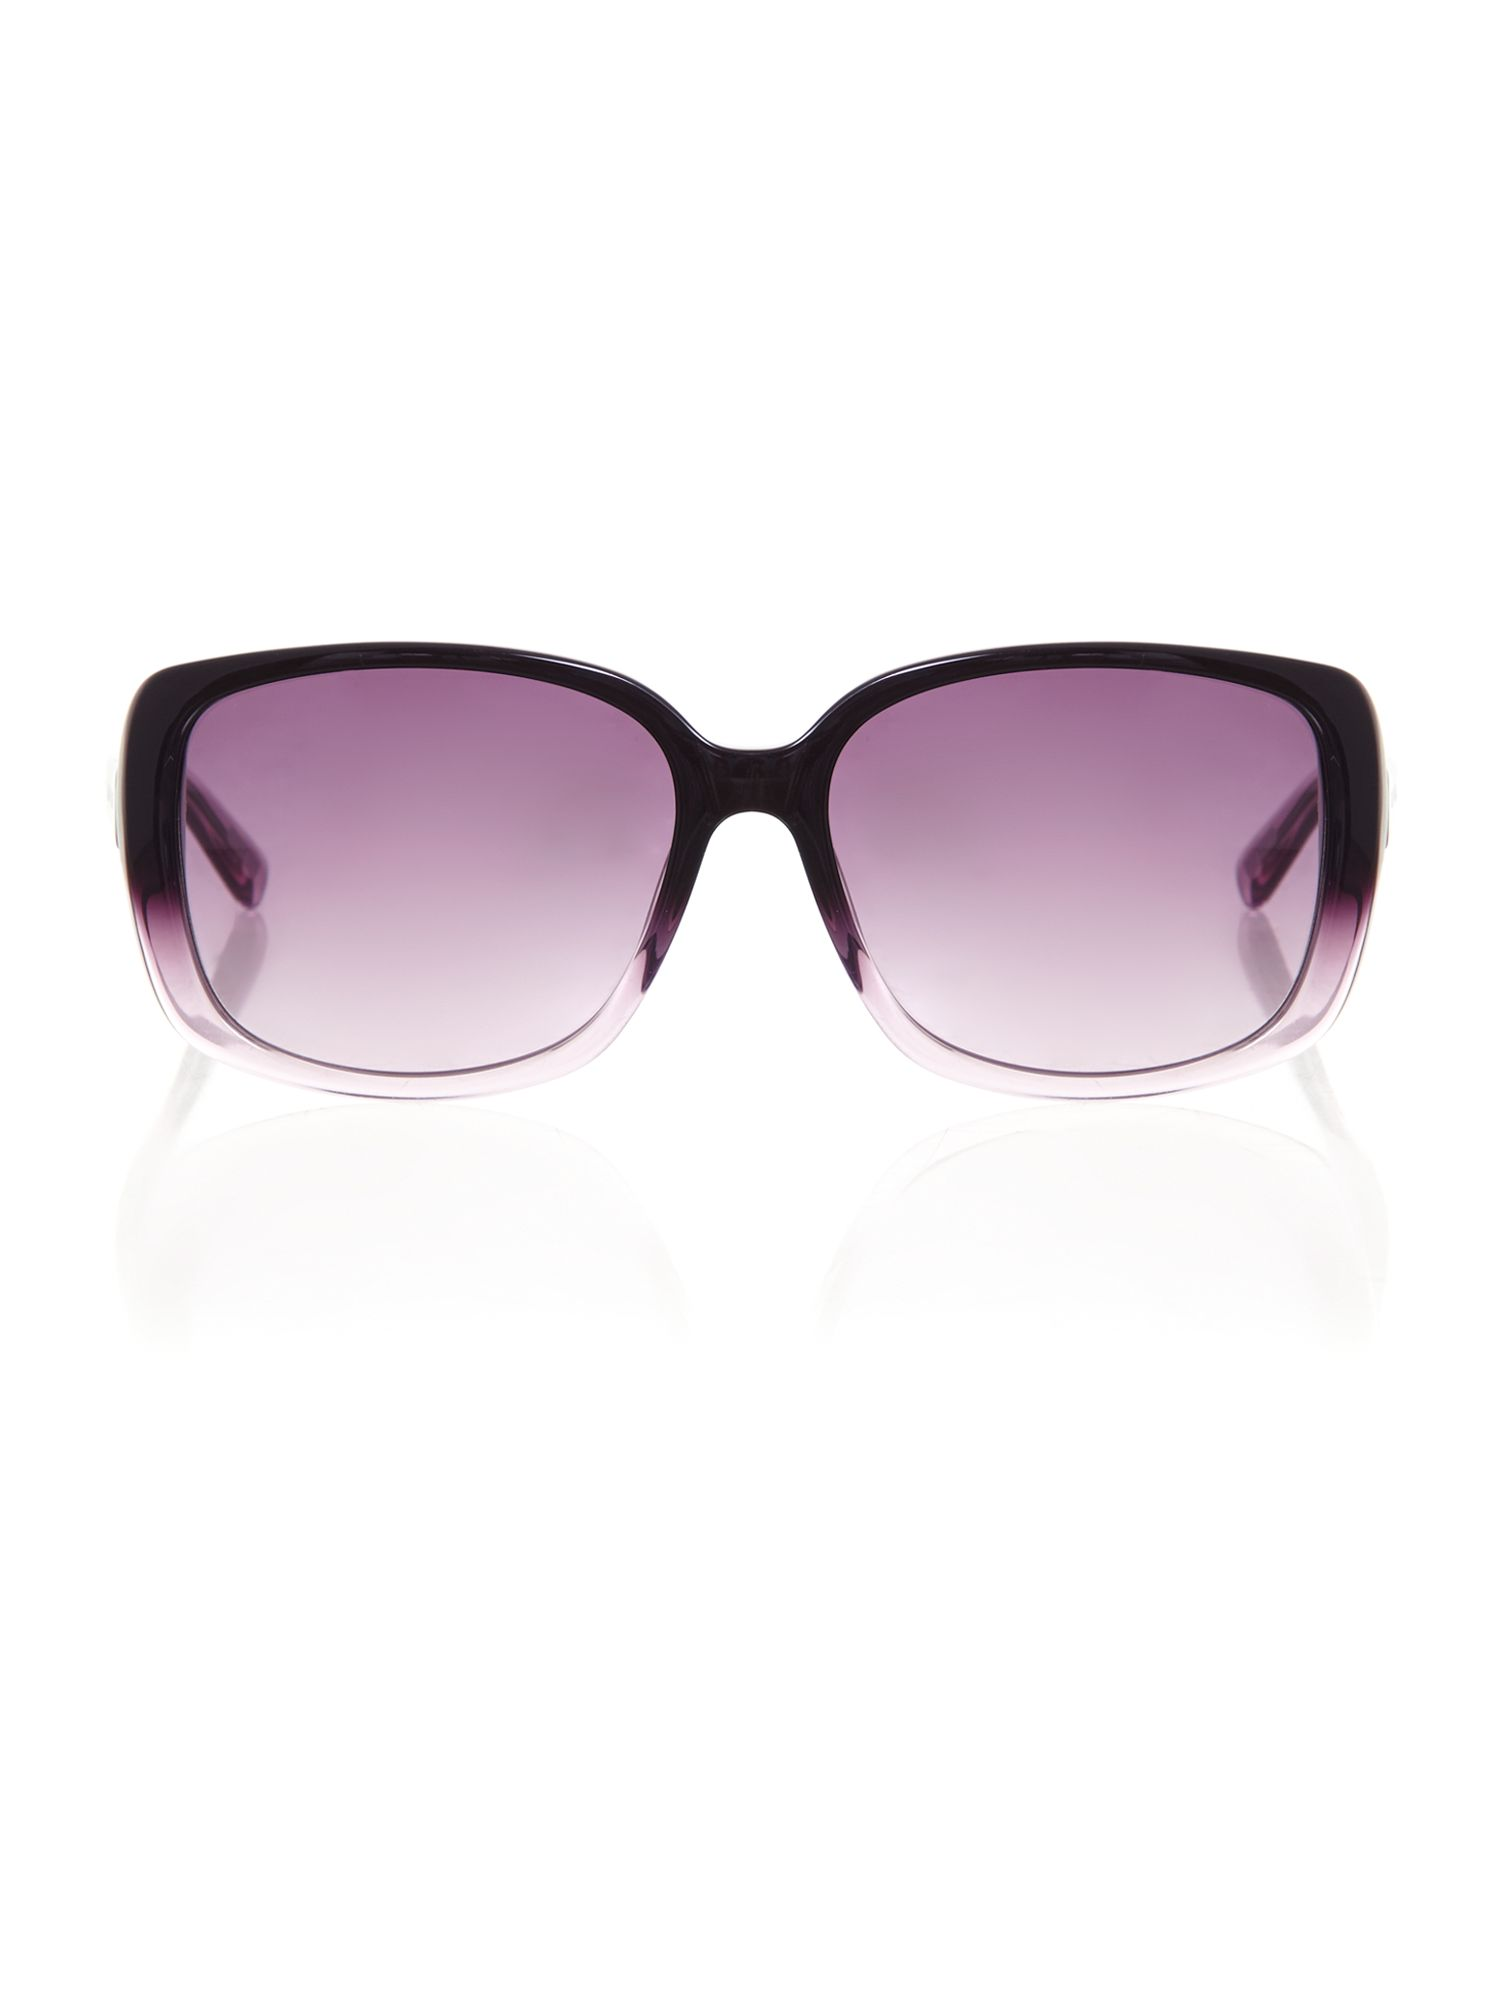 Ladies lole black sunglasses